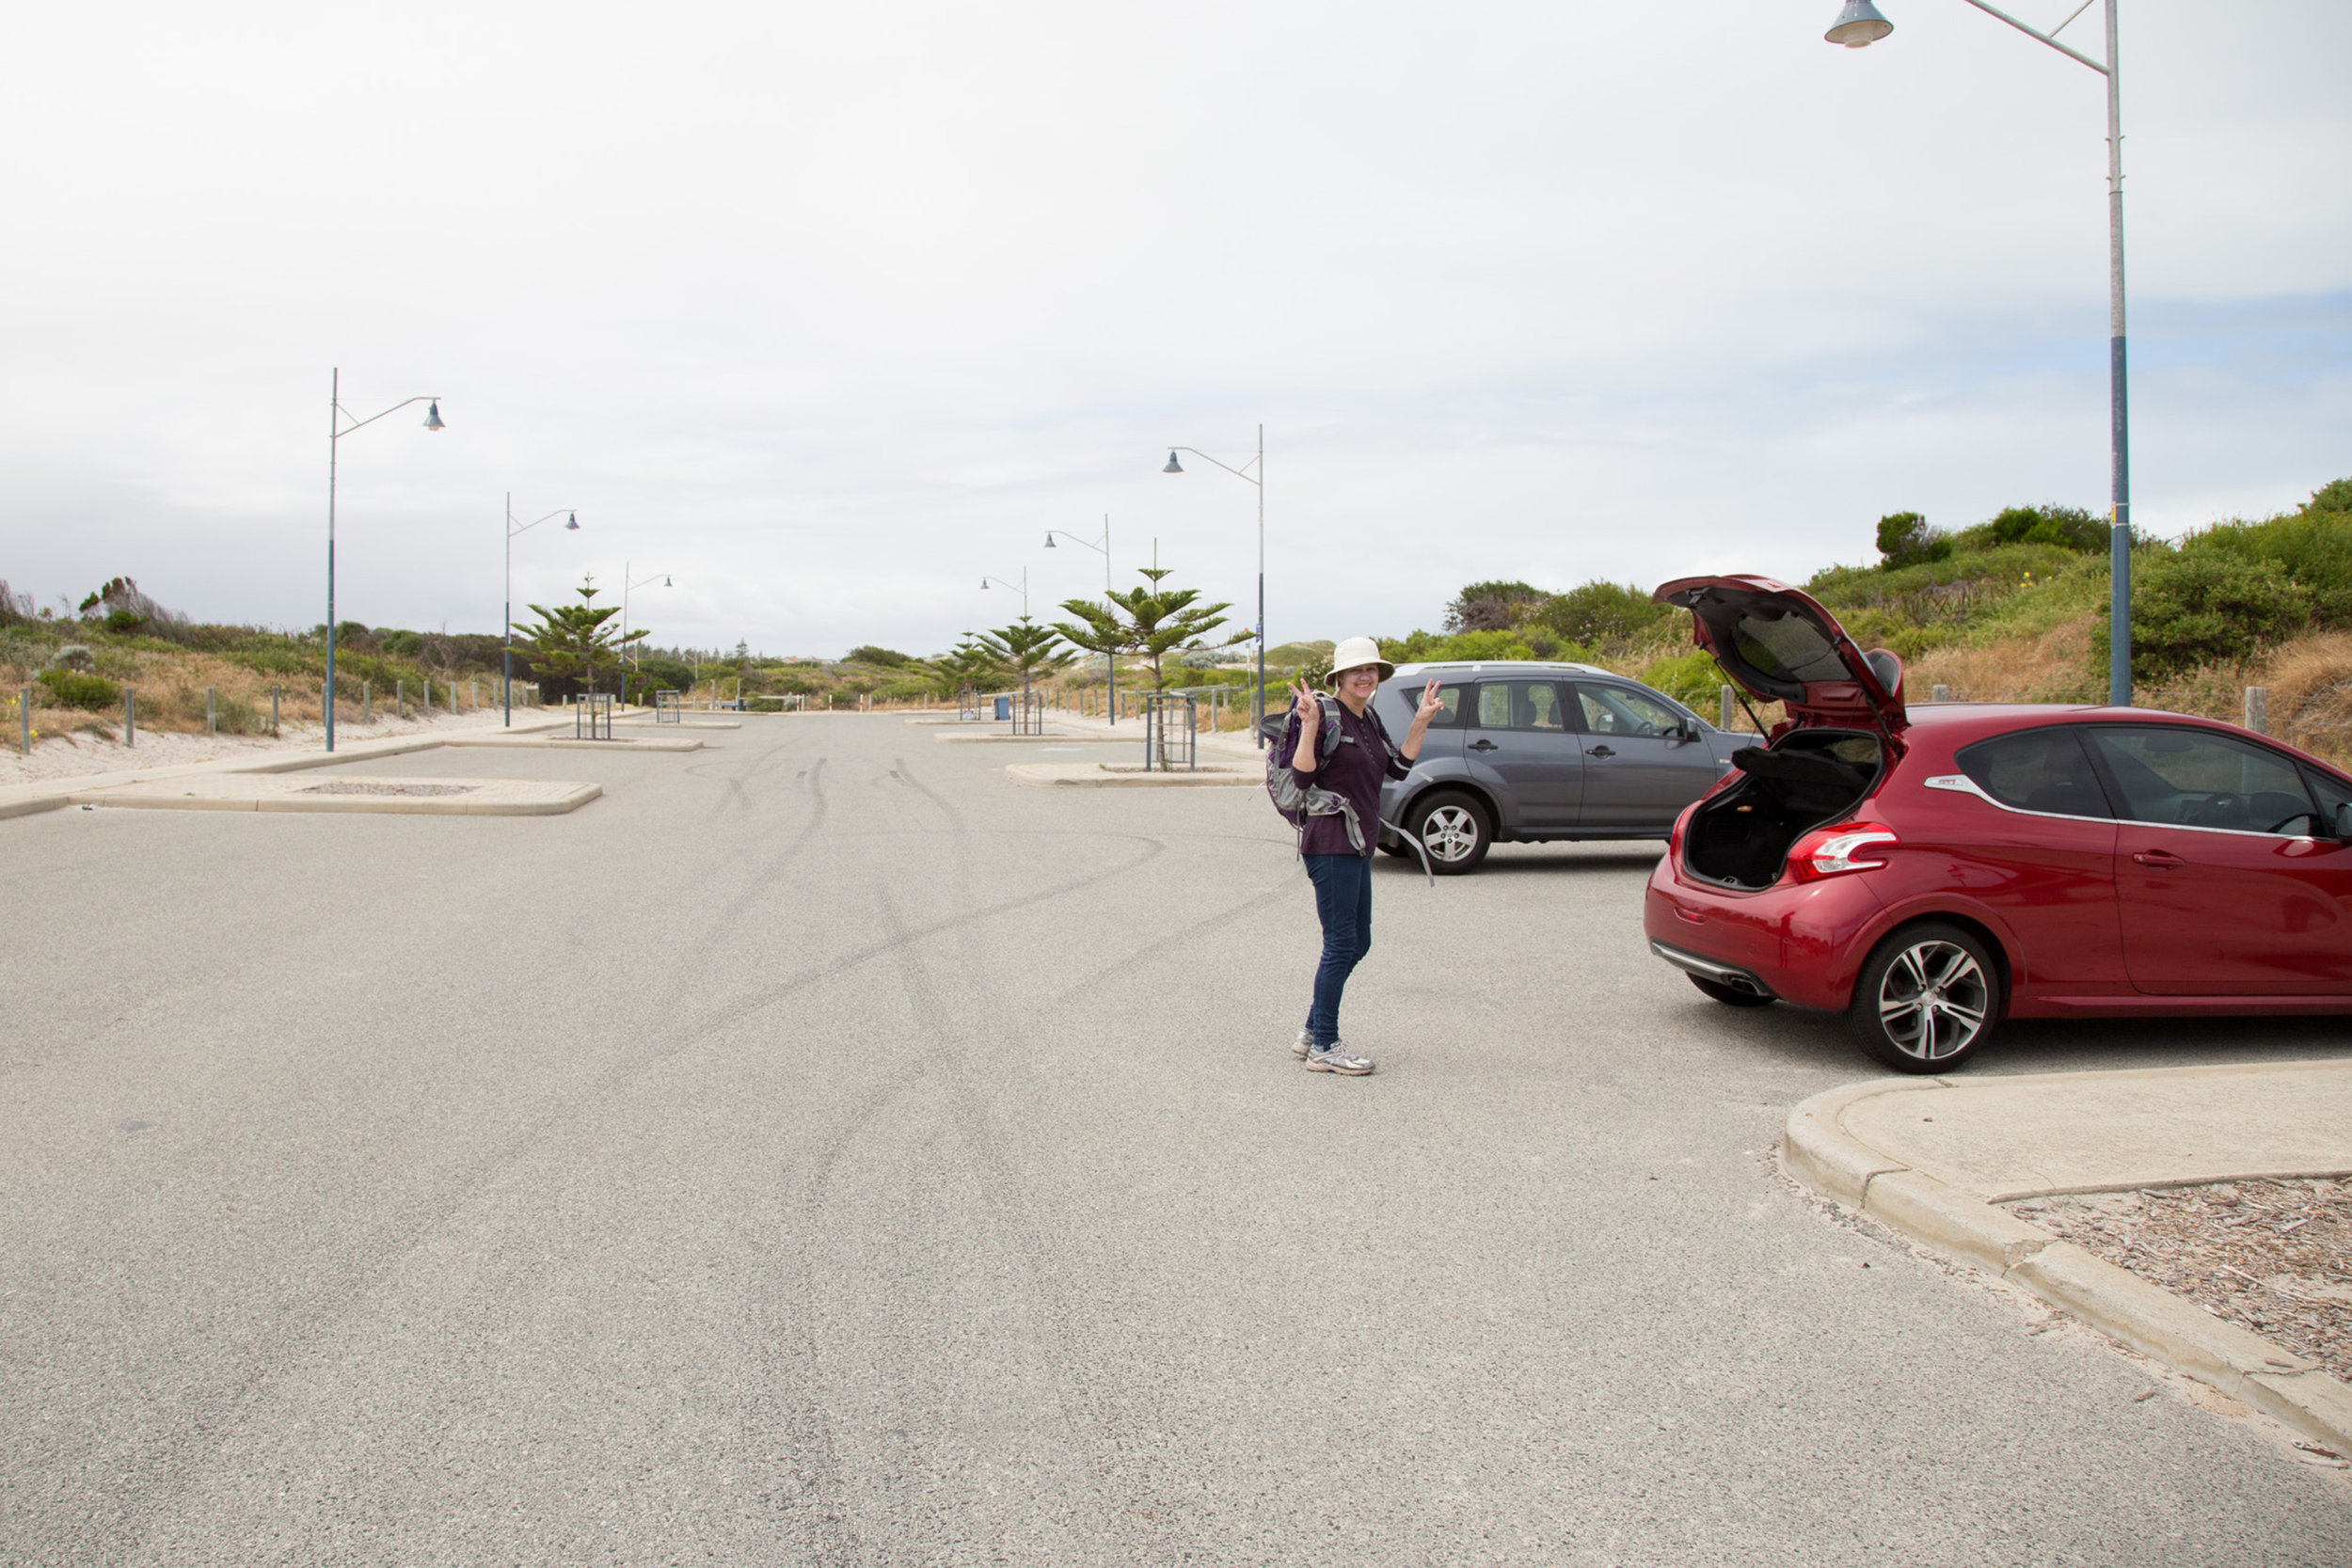 Plate 1: Carpark at the end of Siracusa Court.